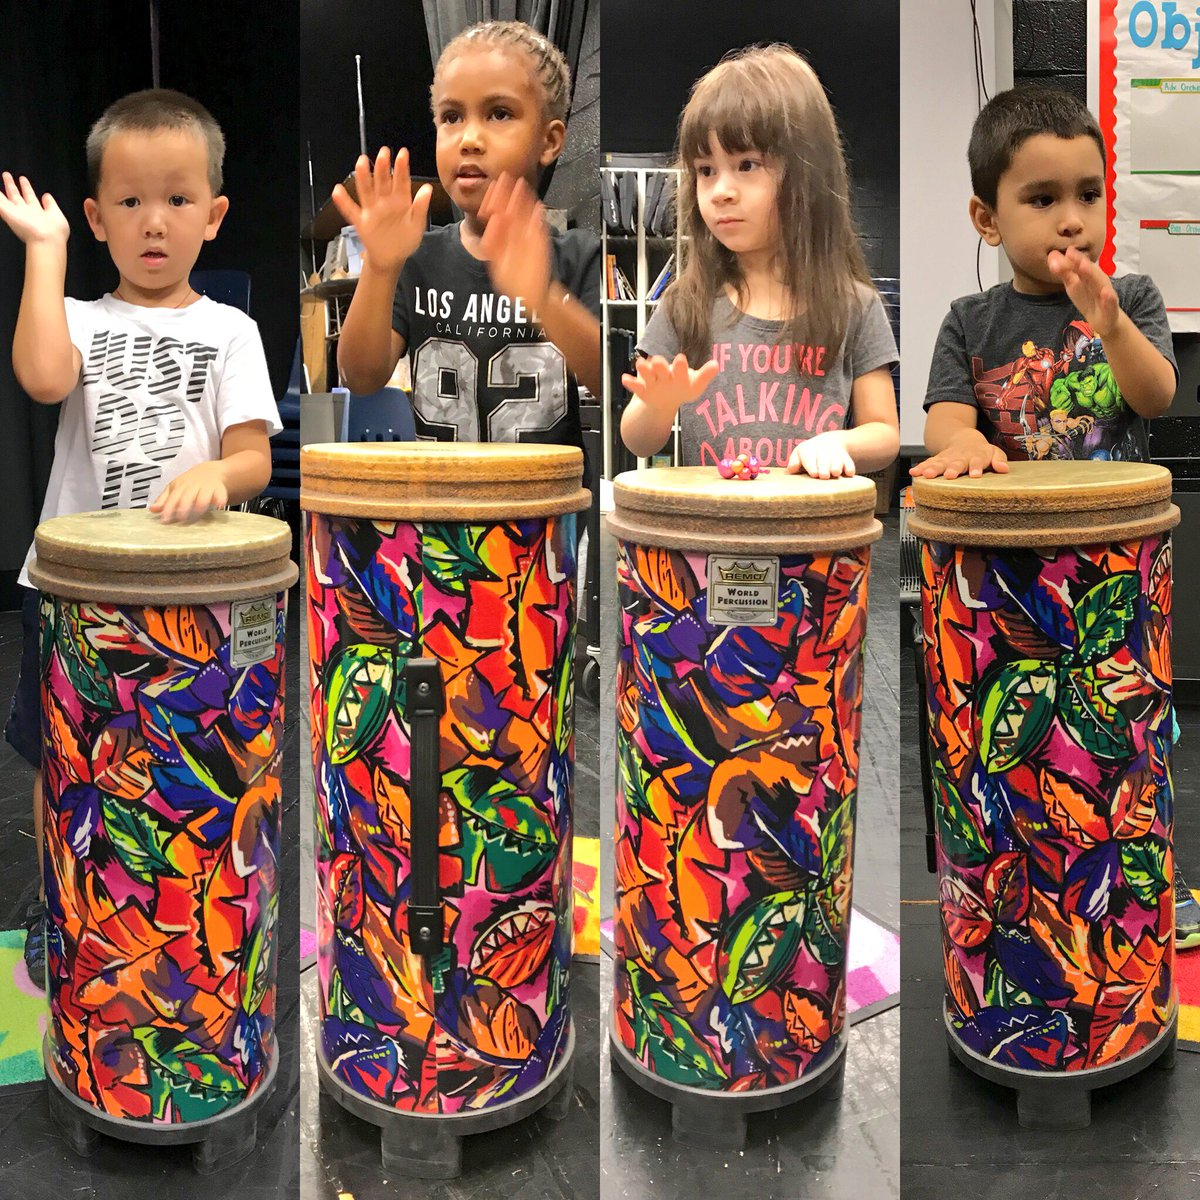 We got to play the Big Drum today in Music Class! 🎶🥁 <a target='_blank' href='http://search.twitter.com/search?q=hfbtweets'><a target='_blank' href='https://twitter.com/hashtag/hfbtweets?src=hash'>#hfbtweets</a></a> <a target='_blank' href='http://search.twitter.com/search?q=APSBack2School'><a target='_blank' href='https://twitter.com/hashtag/APSBack2School?src=hash'>#APSBack2School</a></a> <a target='_blank' href='http://twitter.com/MrMartiniMusic'>@MrMartiniMusic</a> <a target='_blank' href='https://t.co/Z4SuUJF2Pi'>https://t.co/Z4SuUJF2Pi</a>